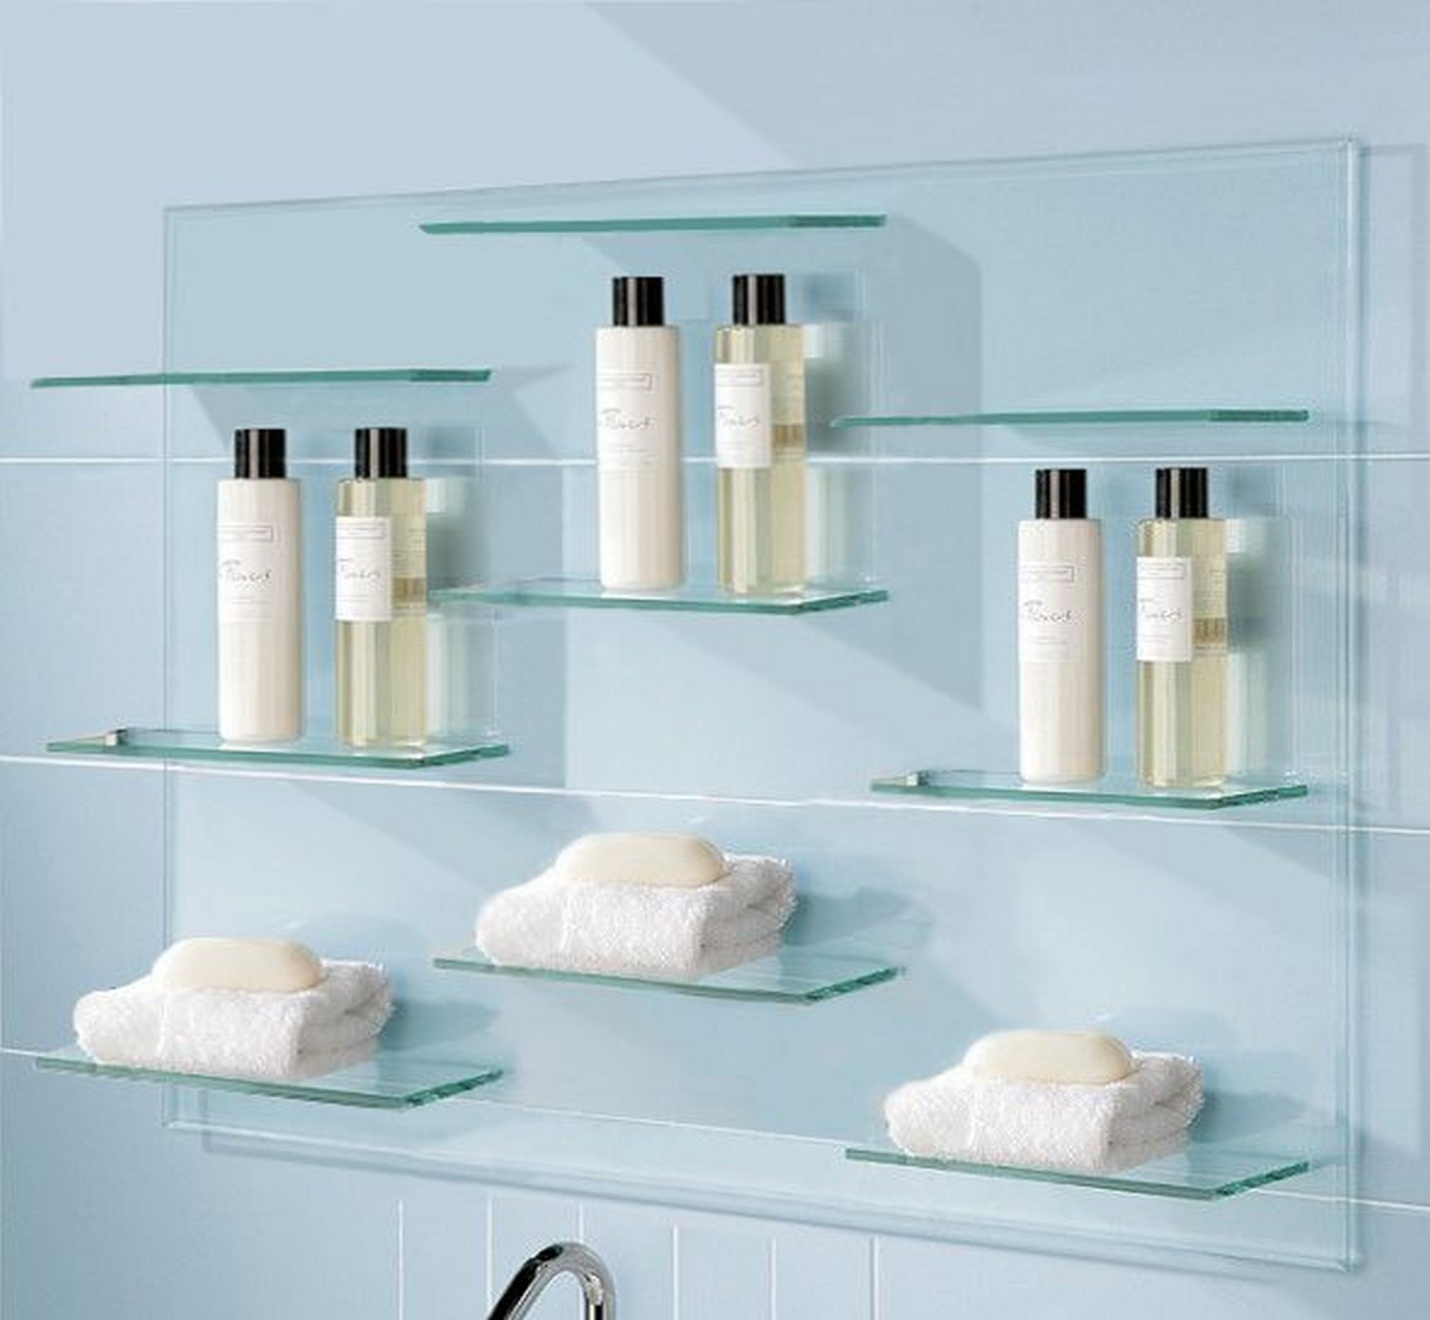 Increase Storage Space to Your Bathroom with Wall Cabinets | LED ...